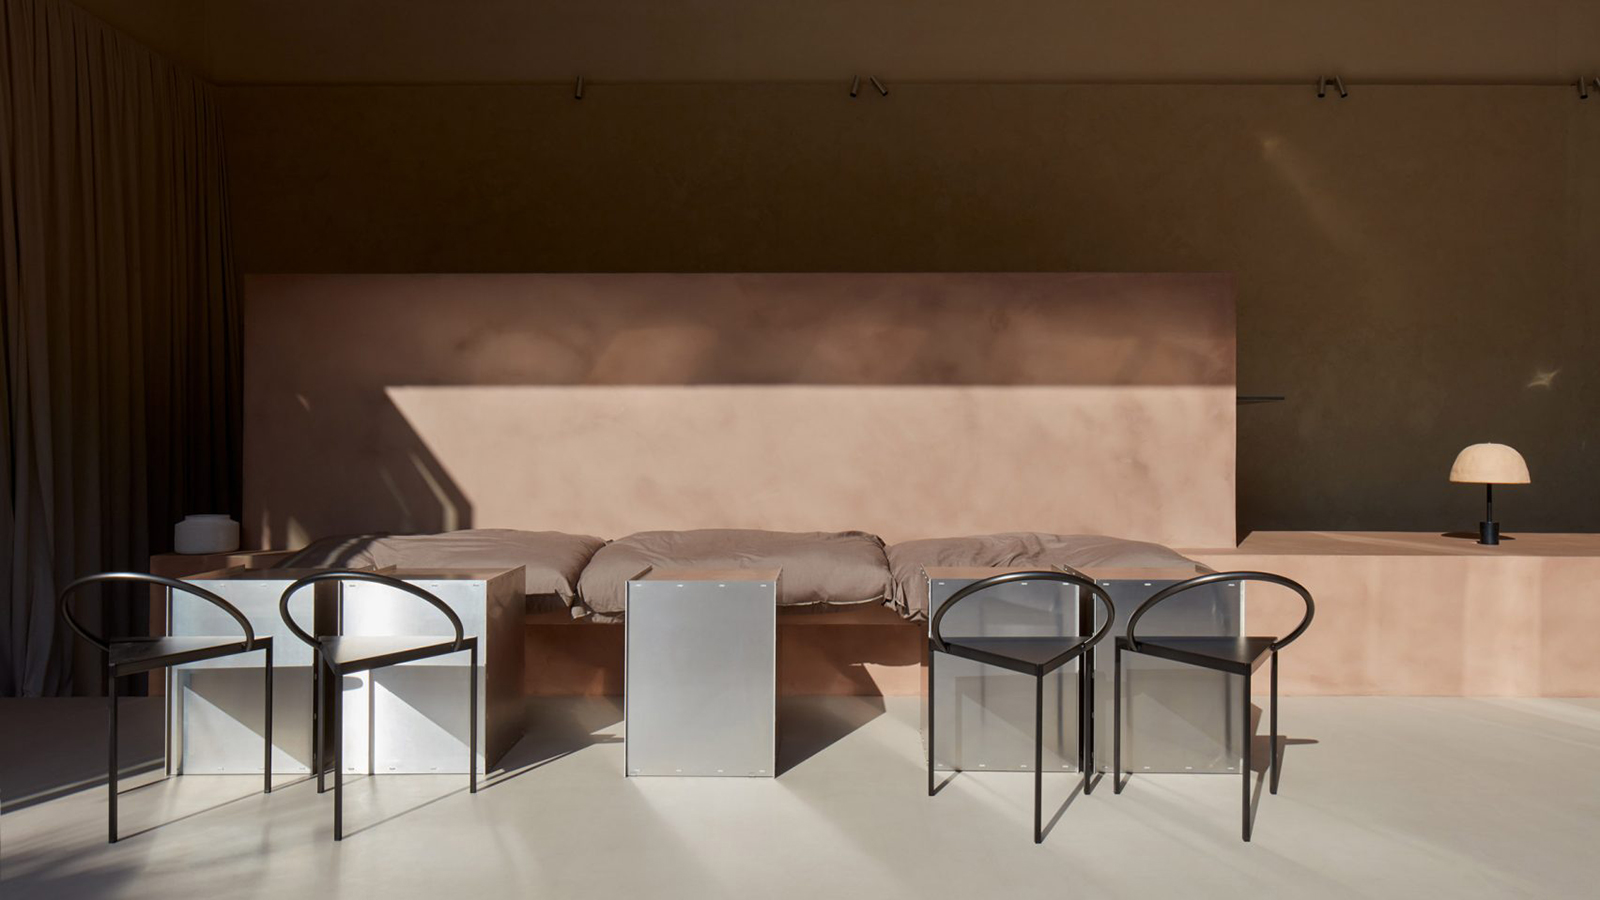 Abu Dhabi's La Petite cafe is all about the rugged minimalism